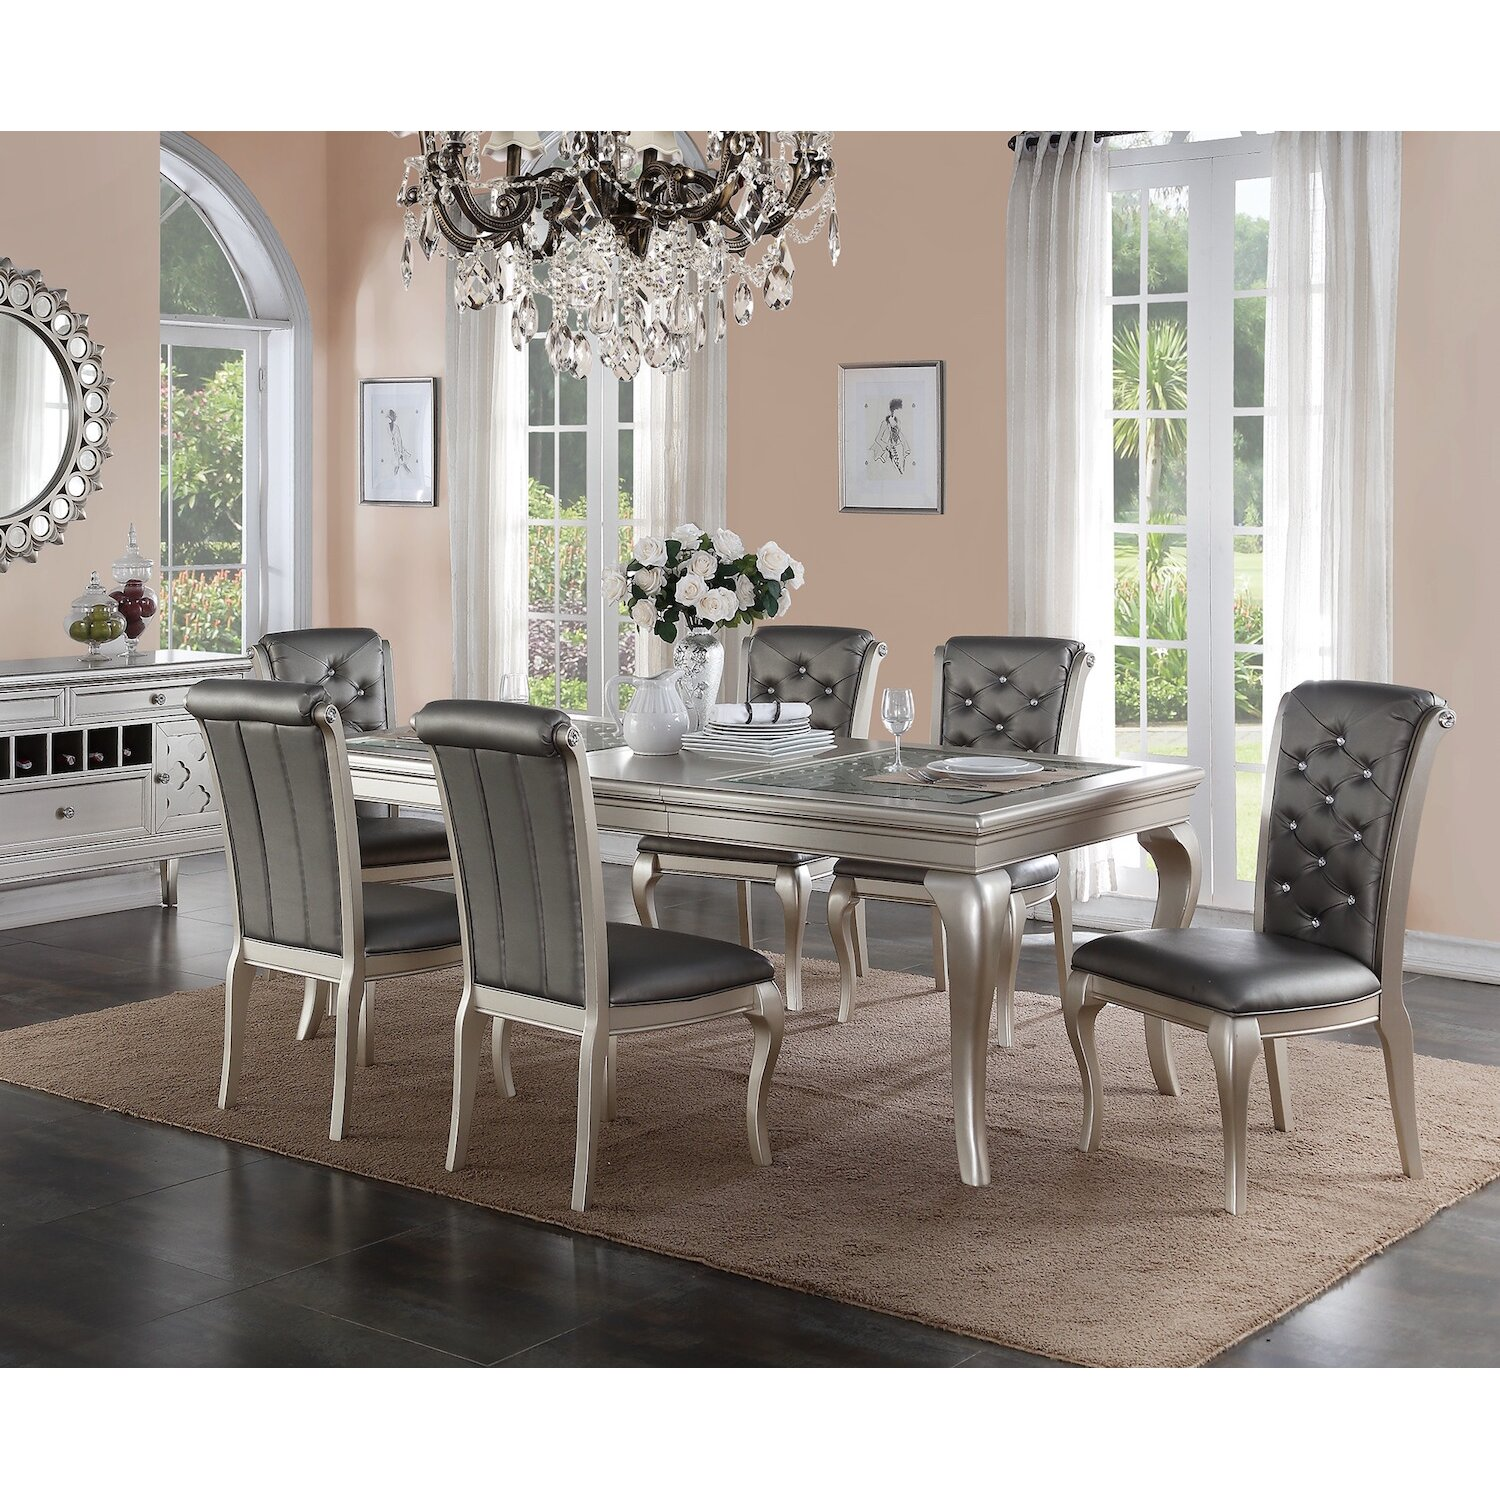 Infini Furnishings Adele 7 Piece Dining Set & Reviews